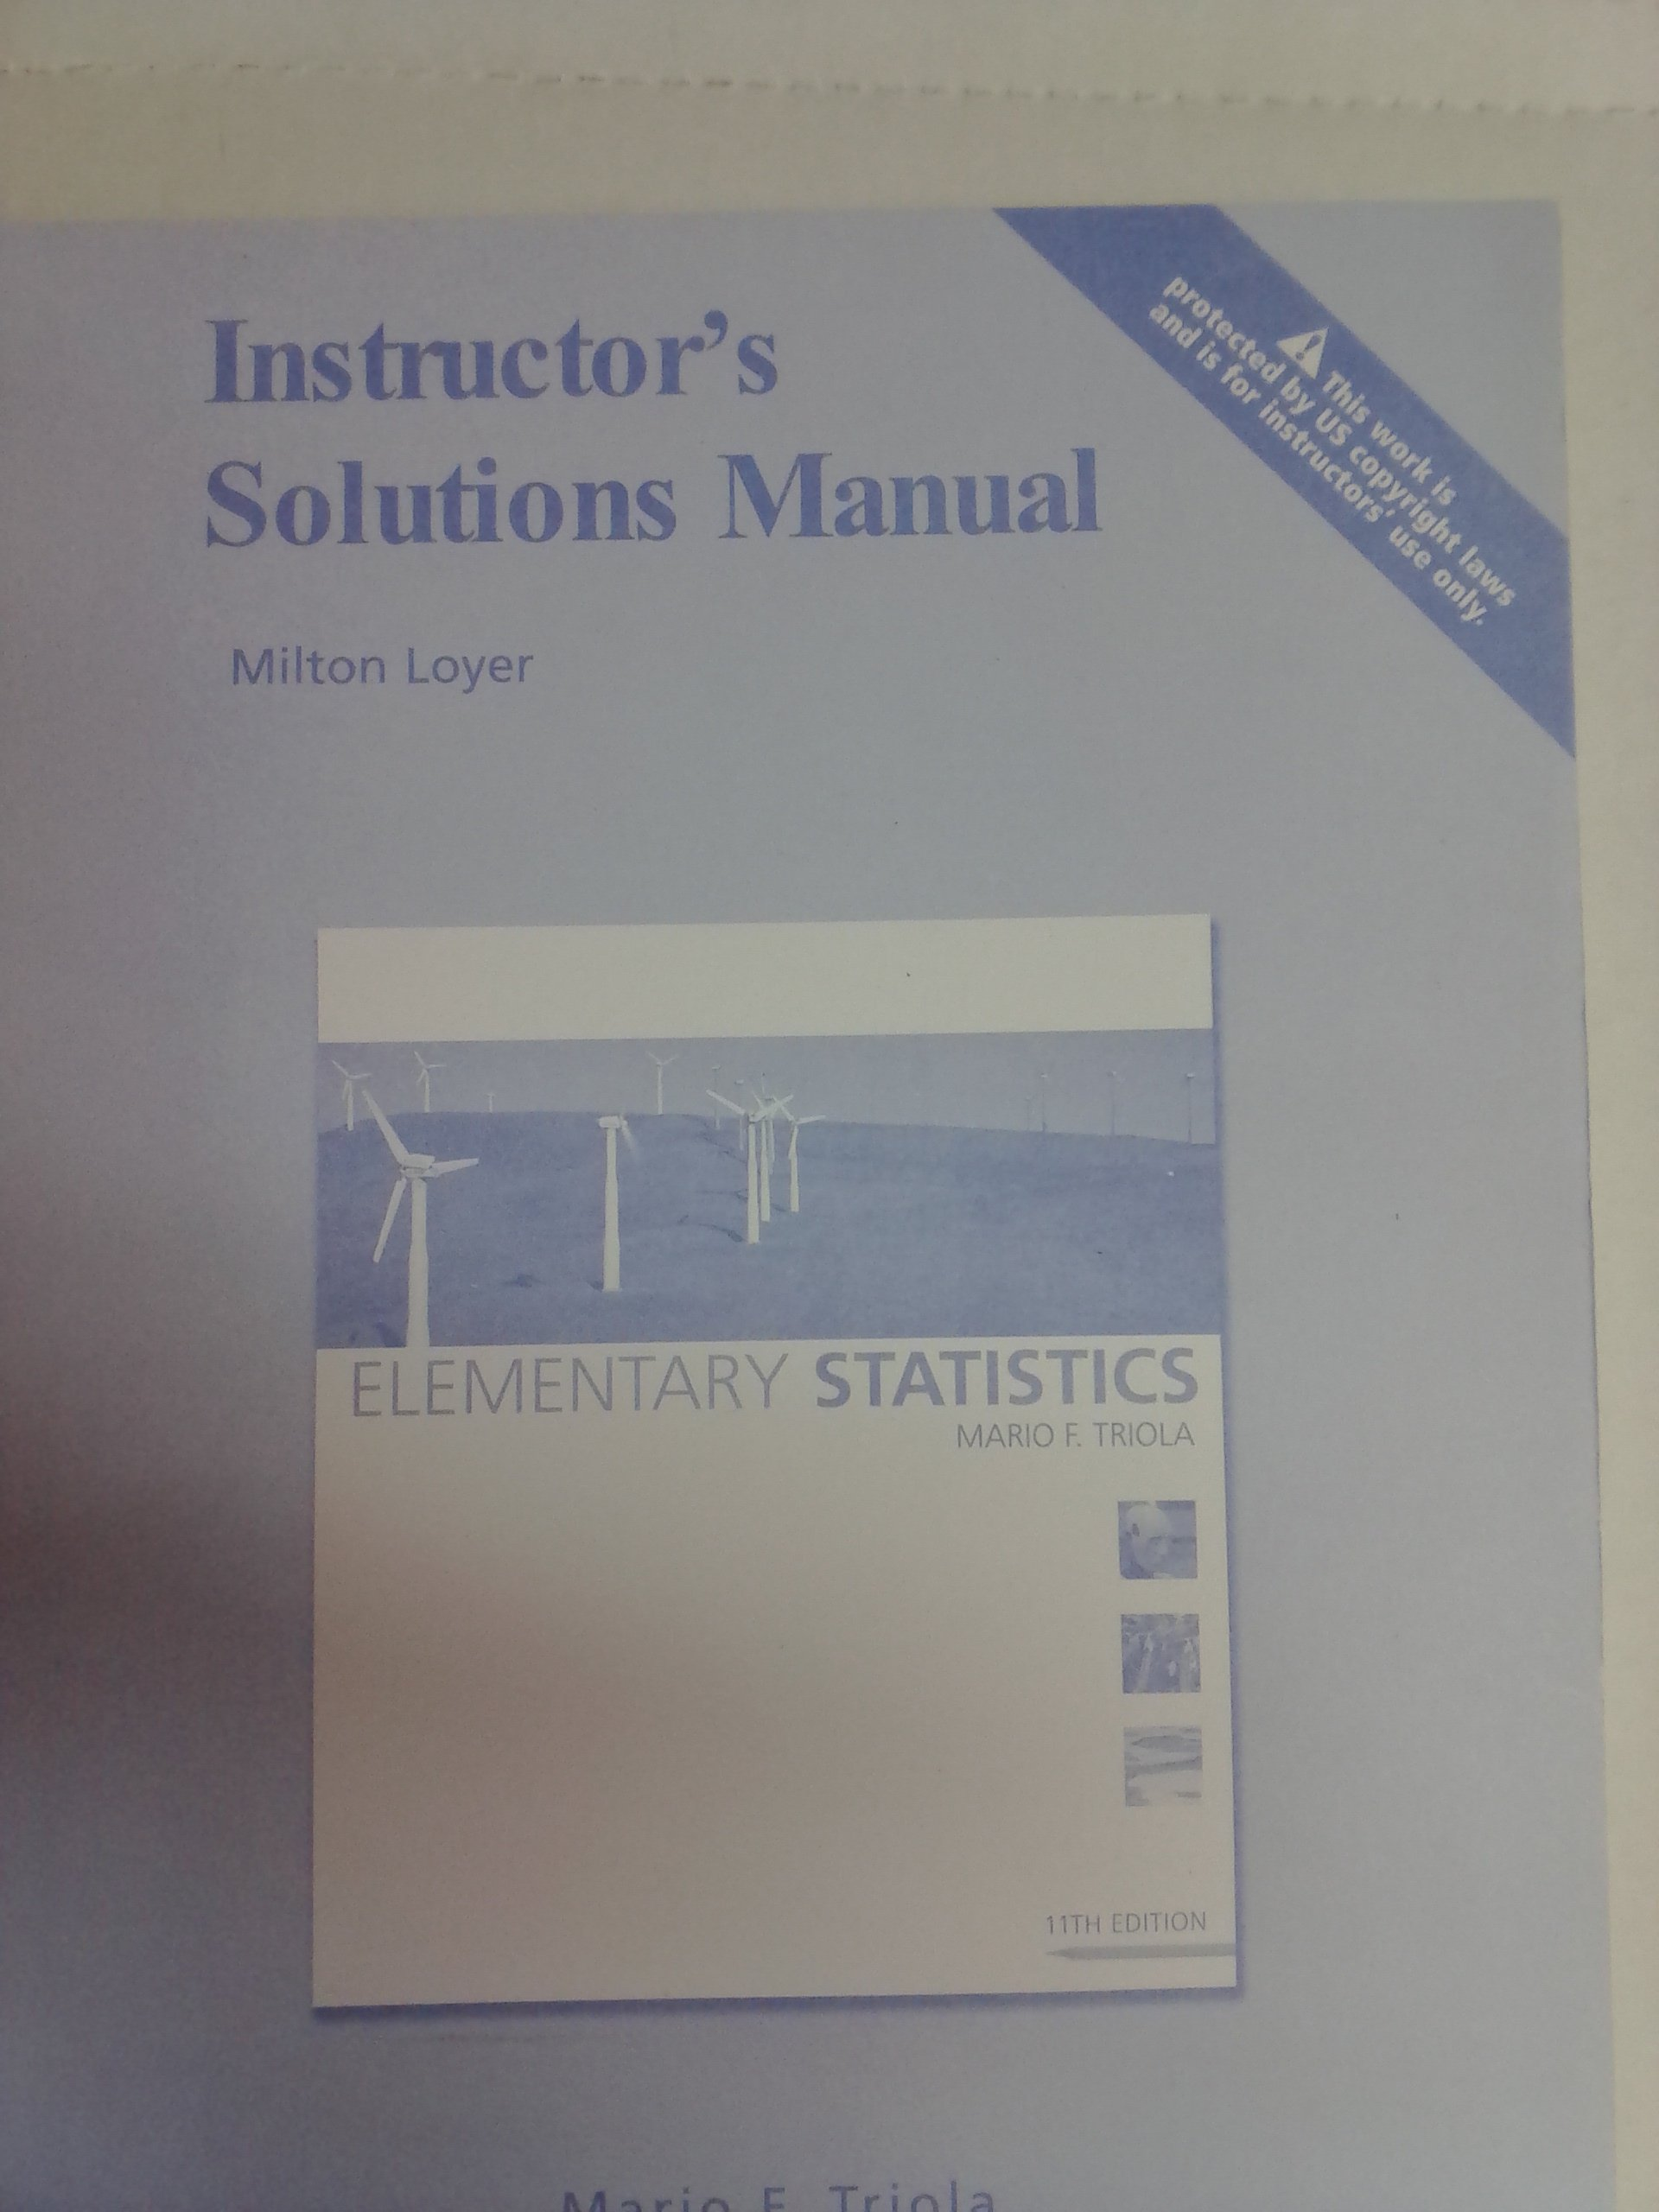 Instructor's Solution Manual - Elementary Statistics: Milton Loyer:  9780321570673: Amazon.com: Books